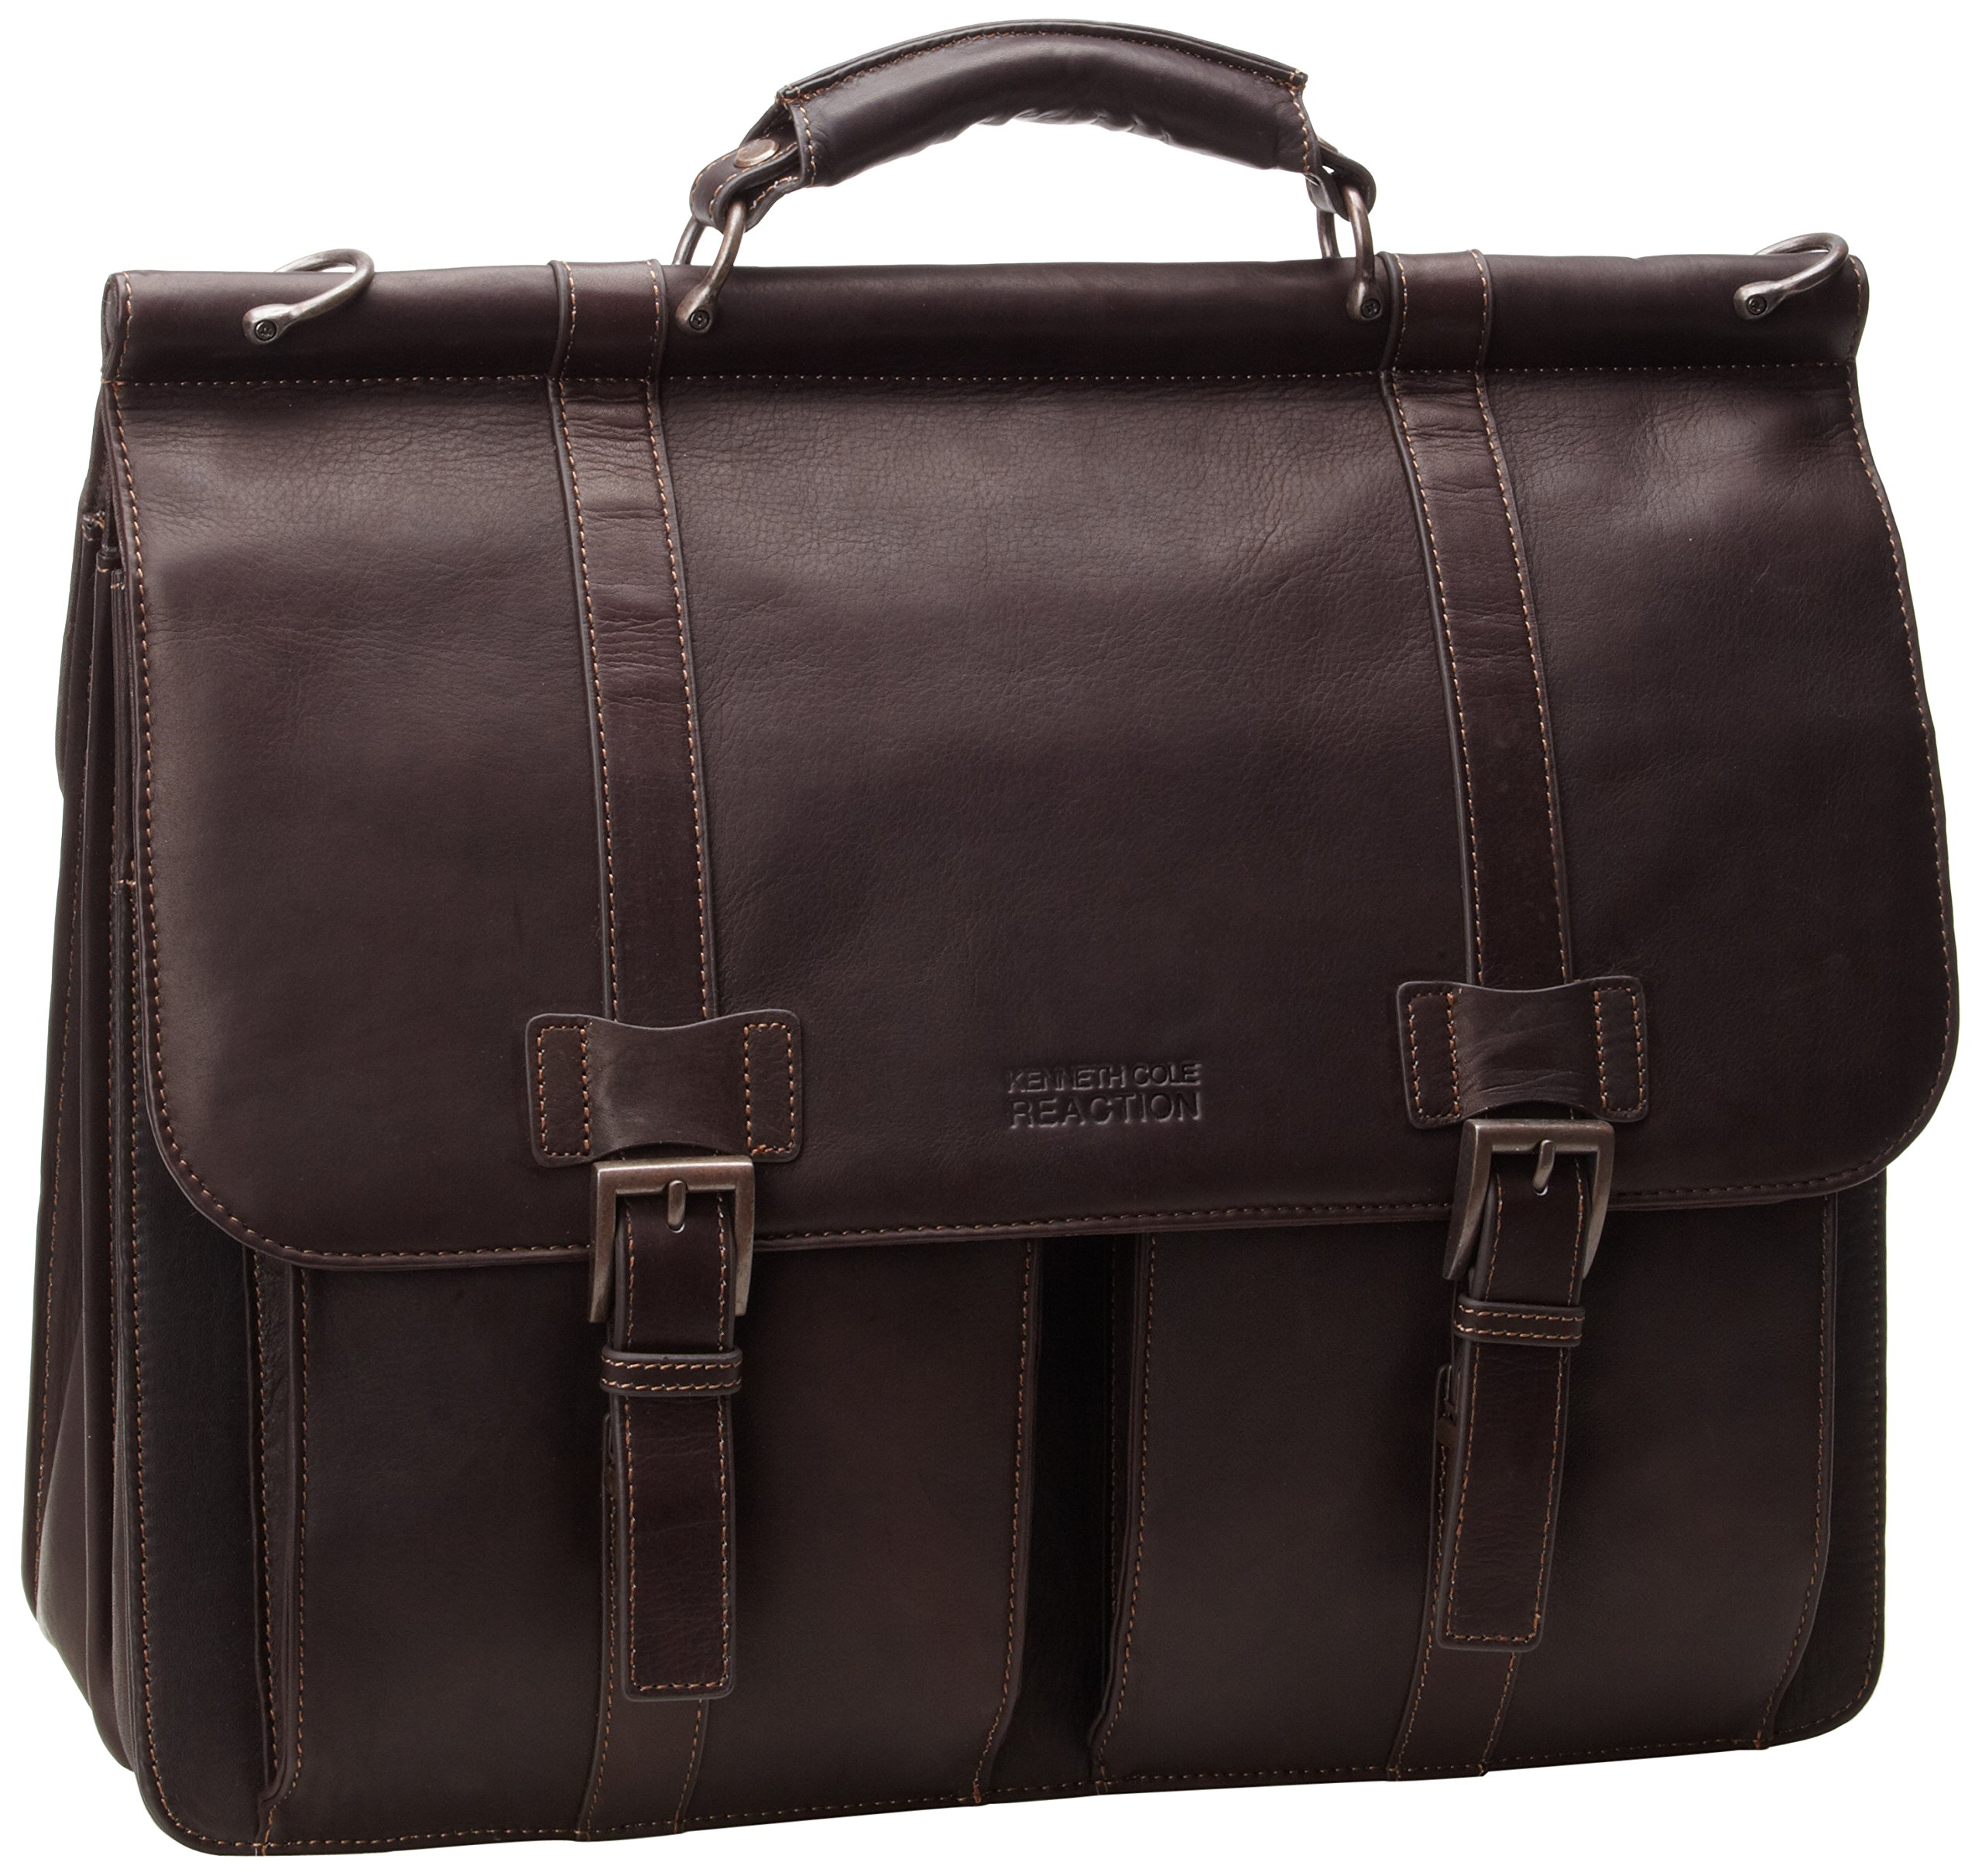 Kenneth Cole Reaction ''Mind Your Own Business'' Colombian Leather Double Compartment Dowel Rod Portfolio/Computer Case/ Fits Most 15.4'' Laptops, Brown, One Size